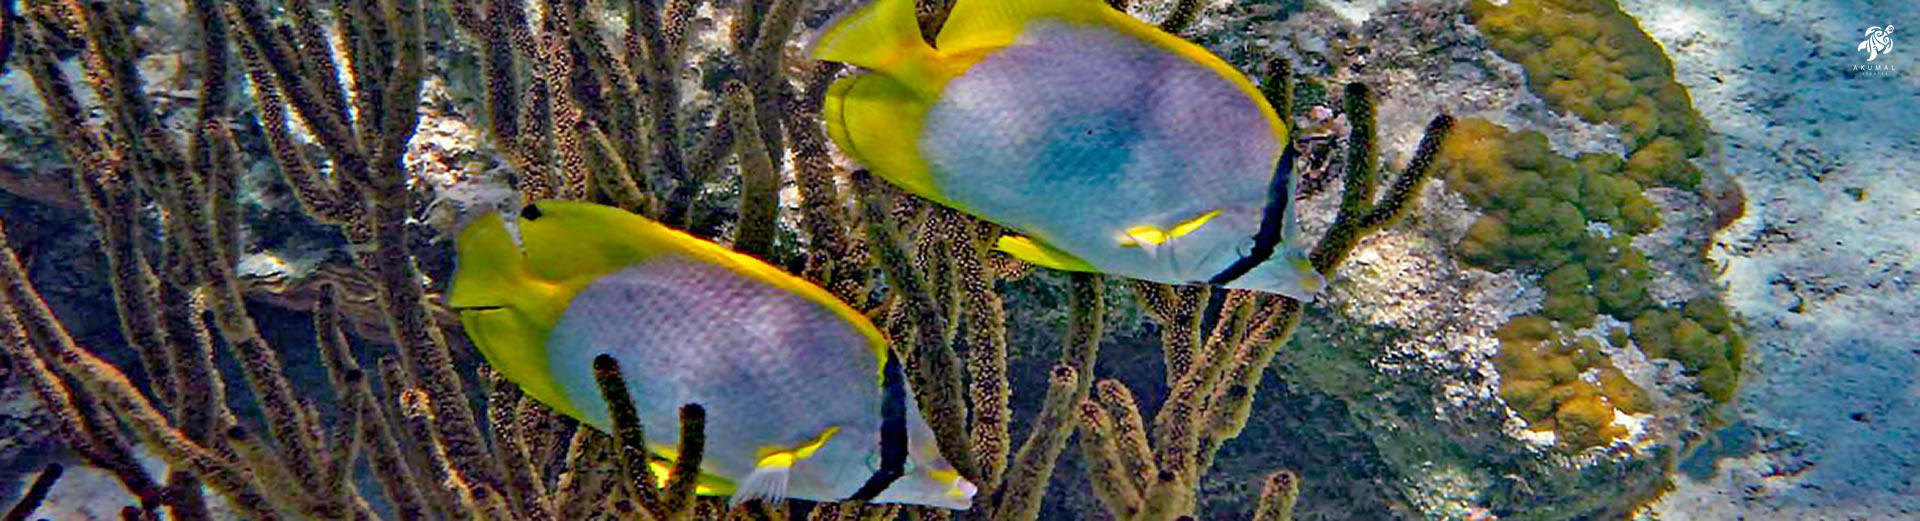 Masked butterfly tangs as seen in Half Moon Bay